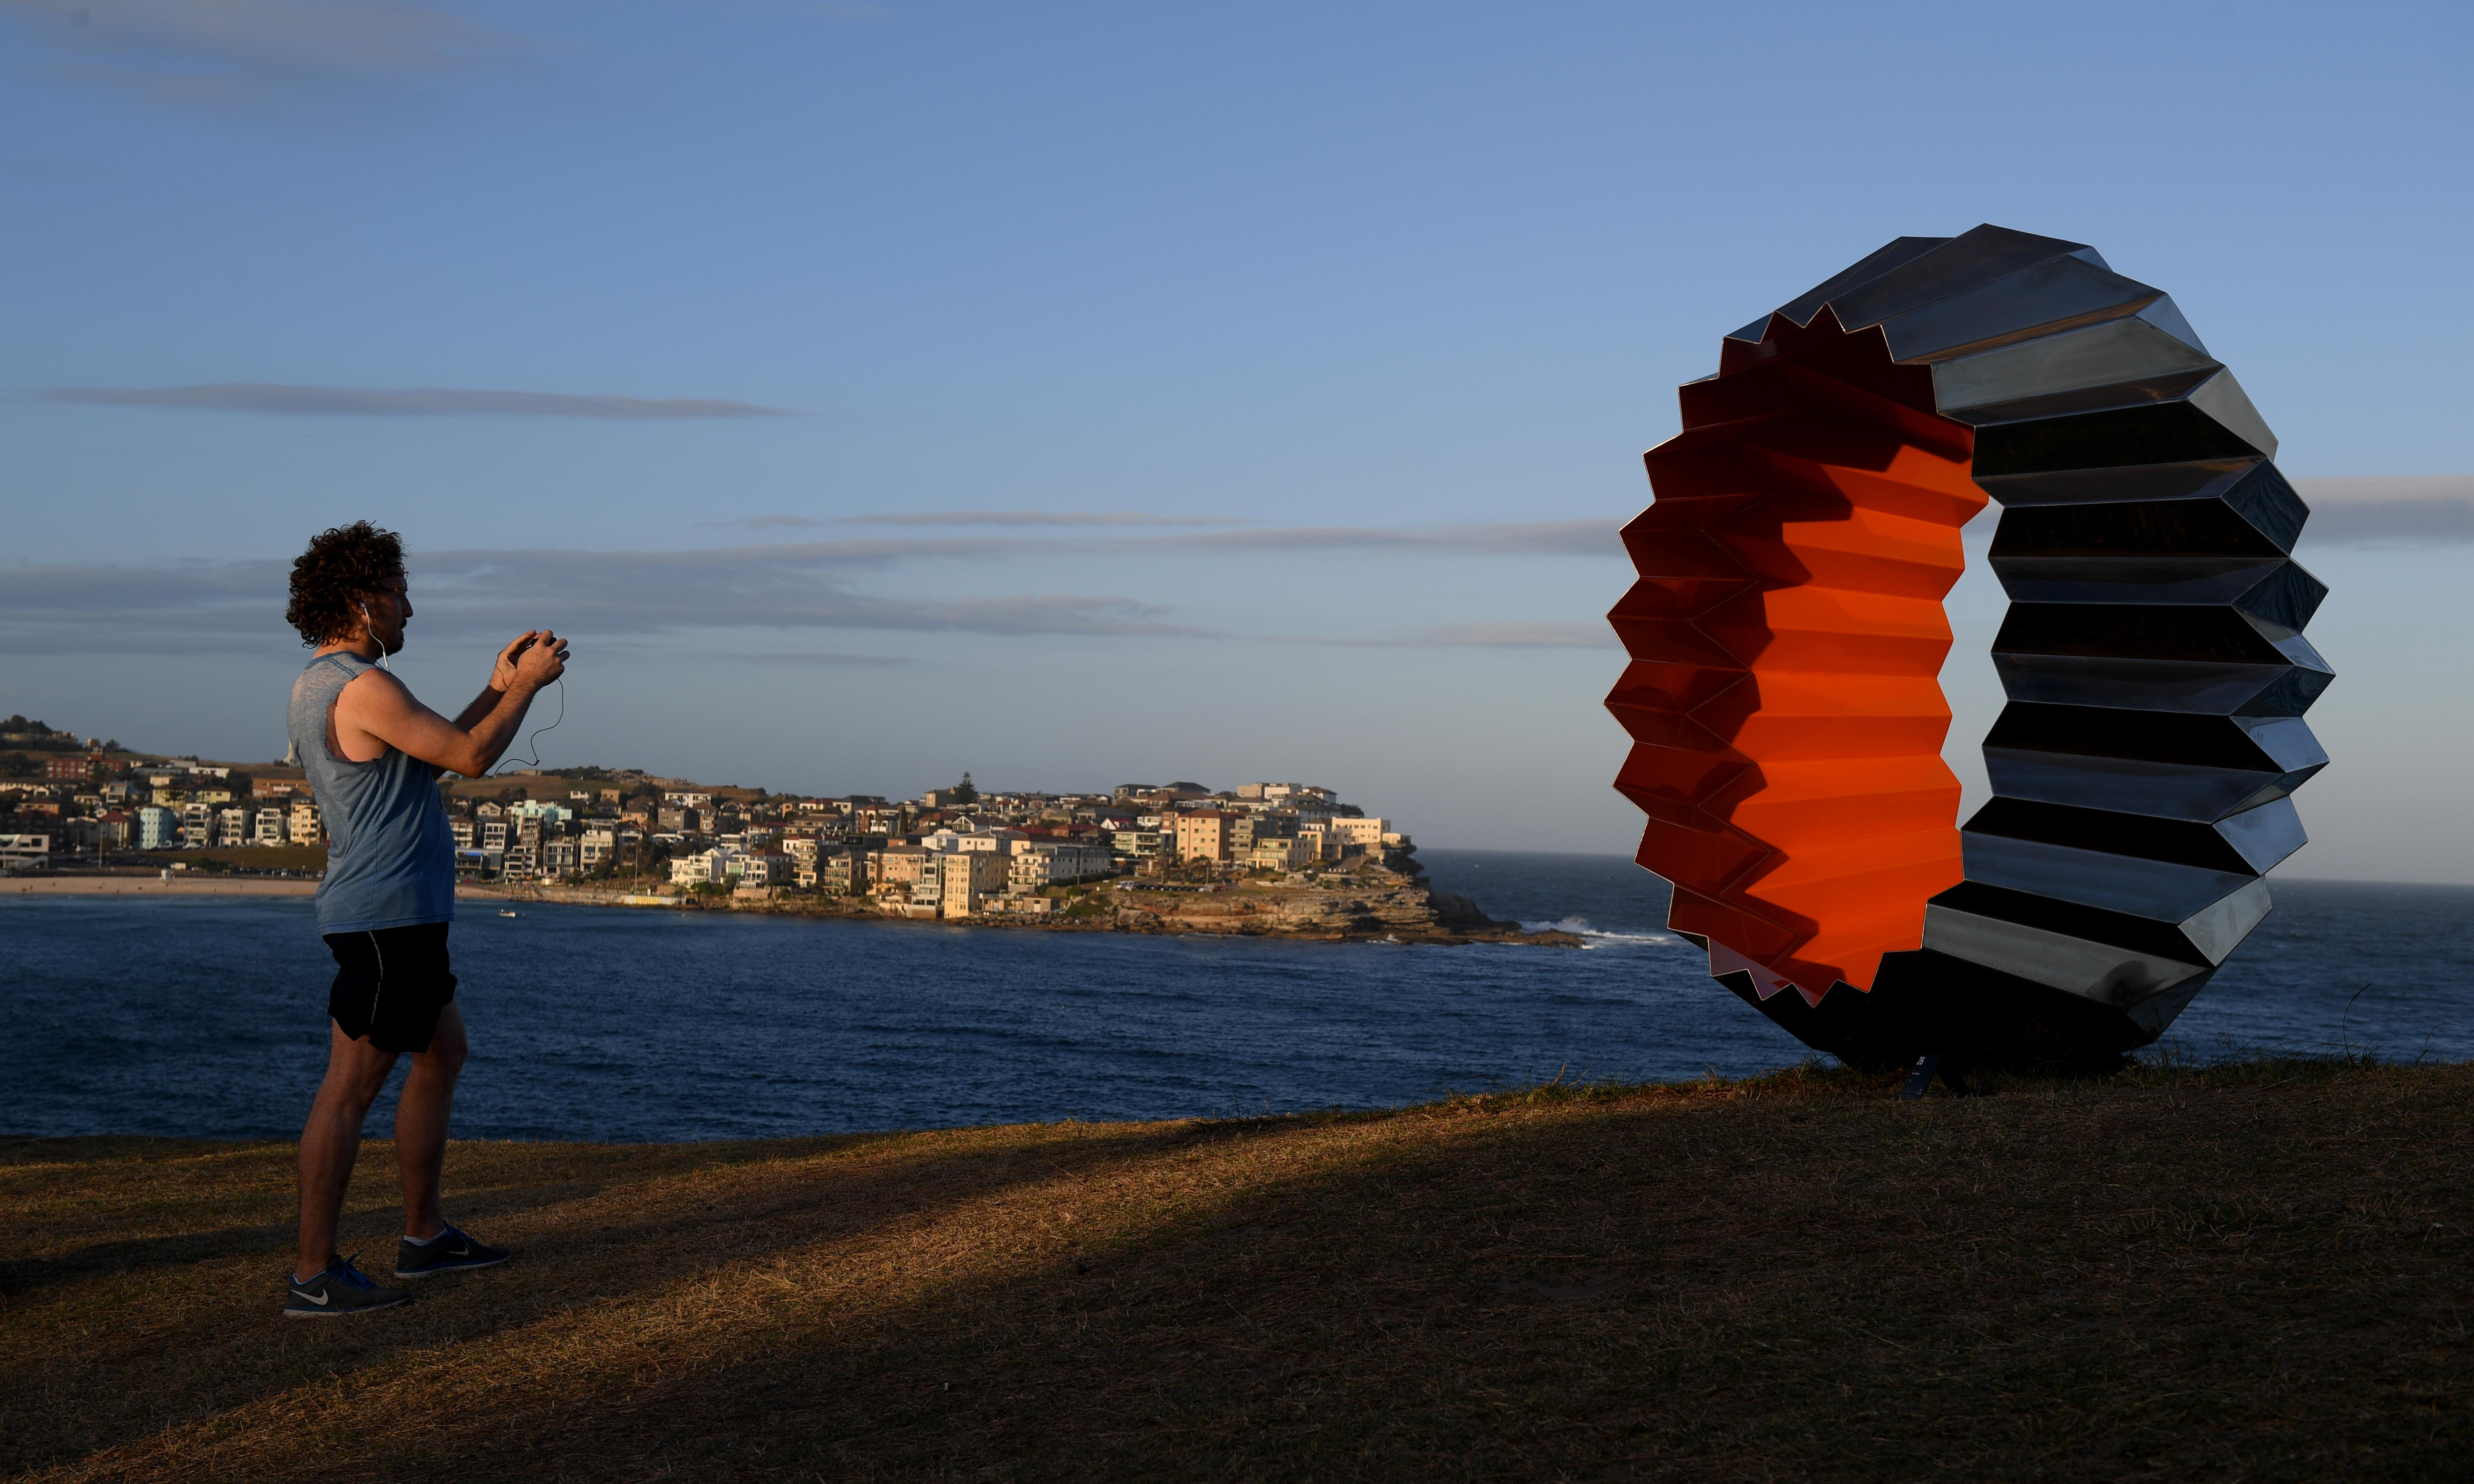 Sculpture by the Sea threatens to leave Bondi after dispute over new path